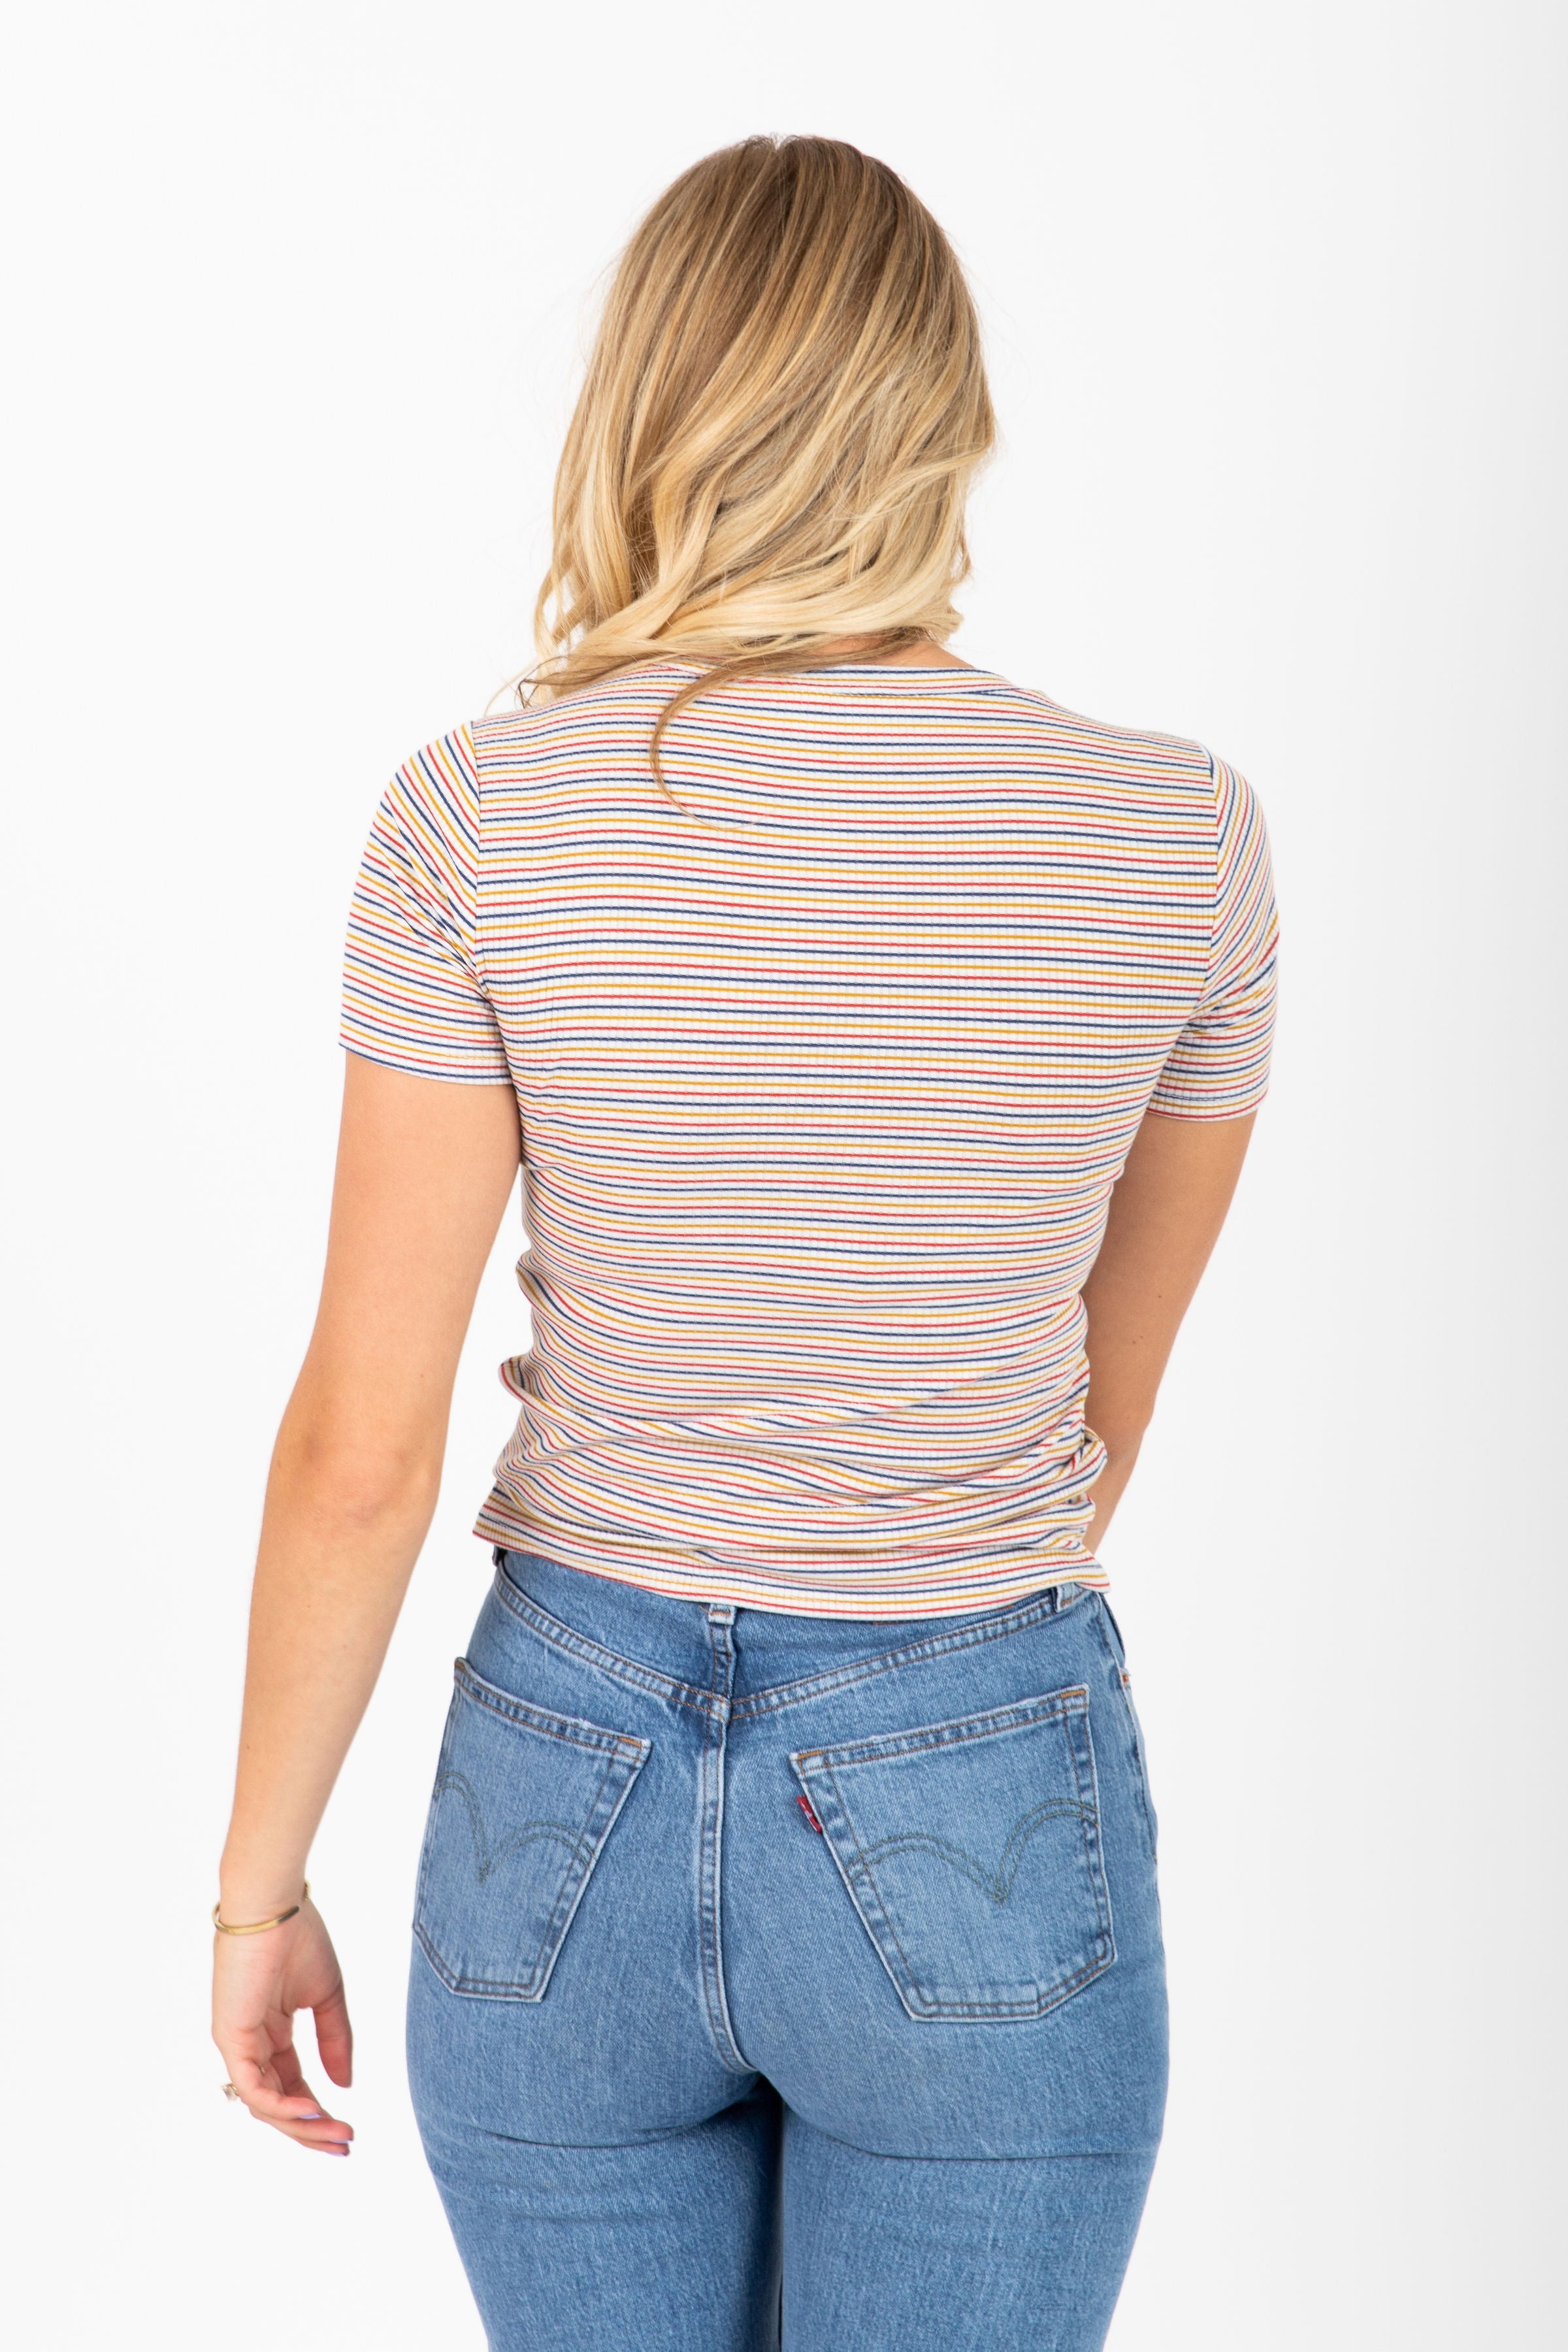 The Weekender Ribbed Striped Top in Multi